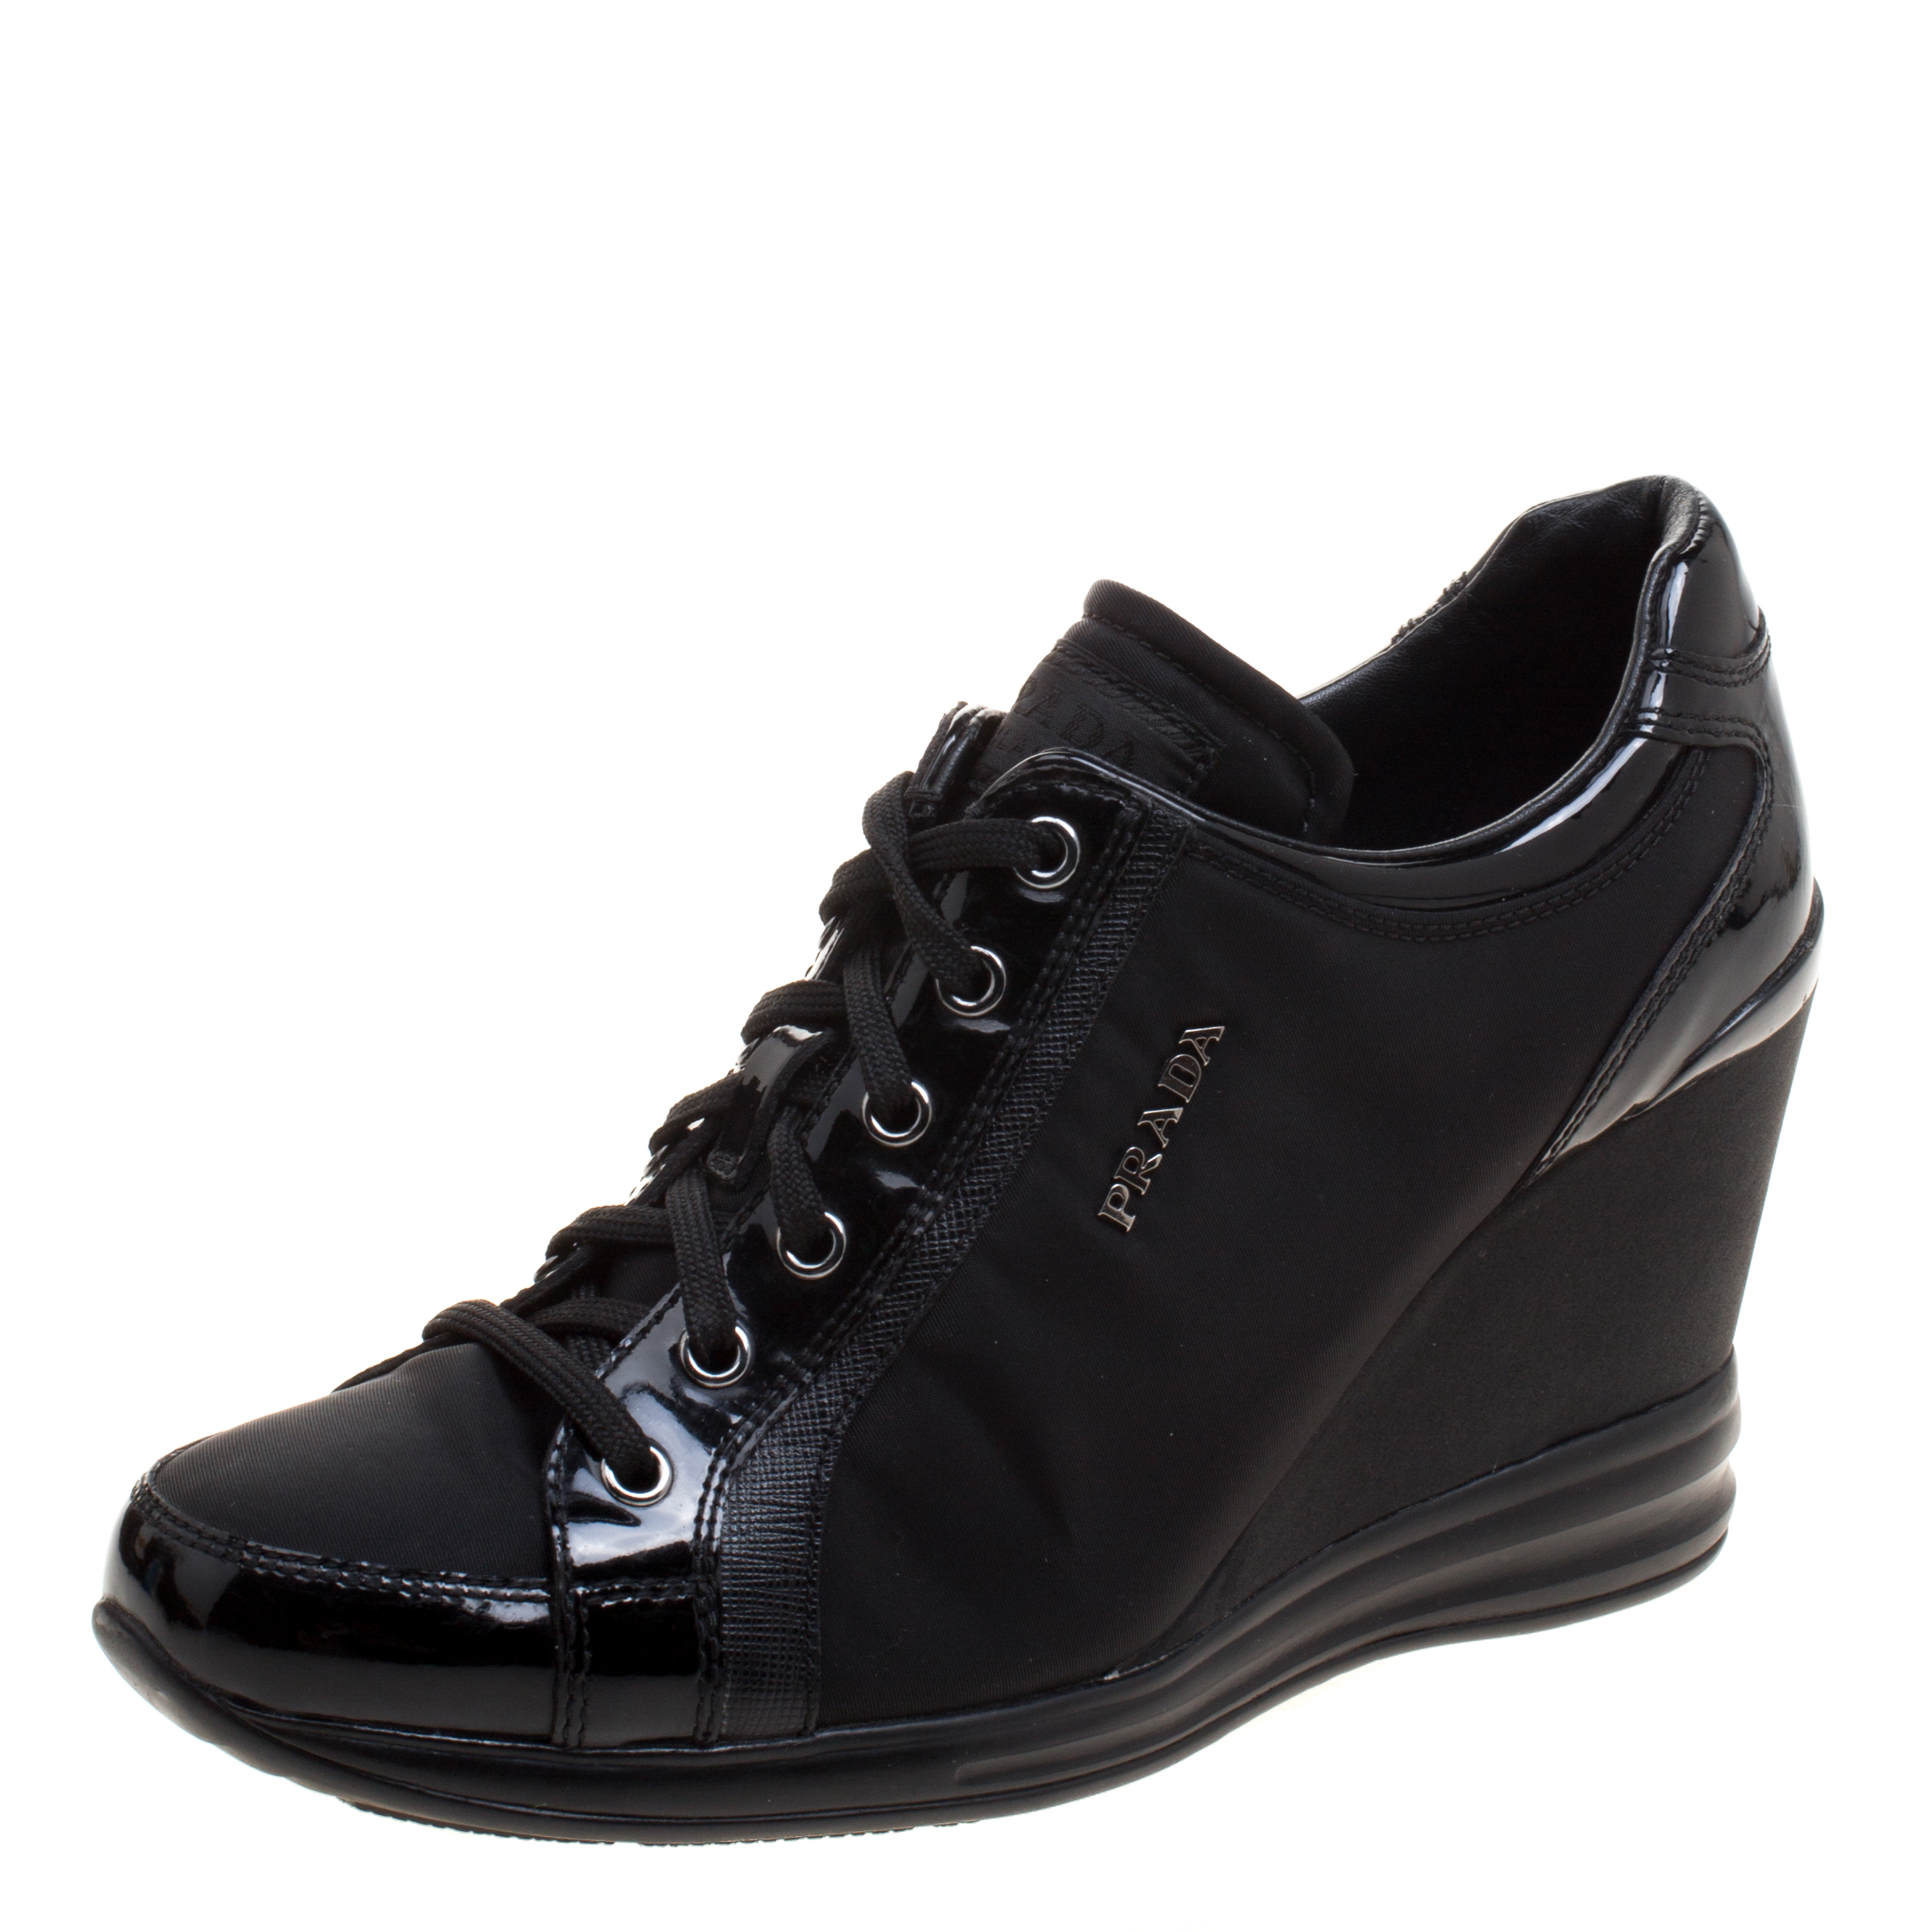 0b0f88d6 Prada Sport Black Nylon and Leather Wedge Lace Up Sneakers Size 38.5